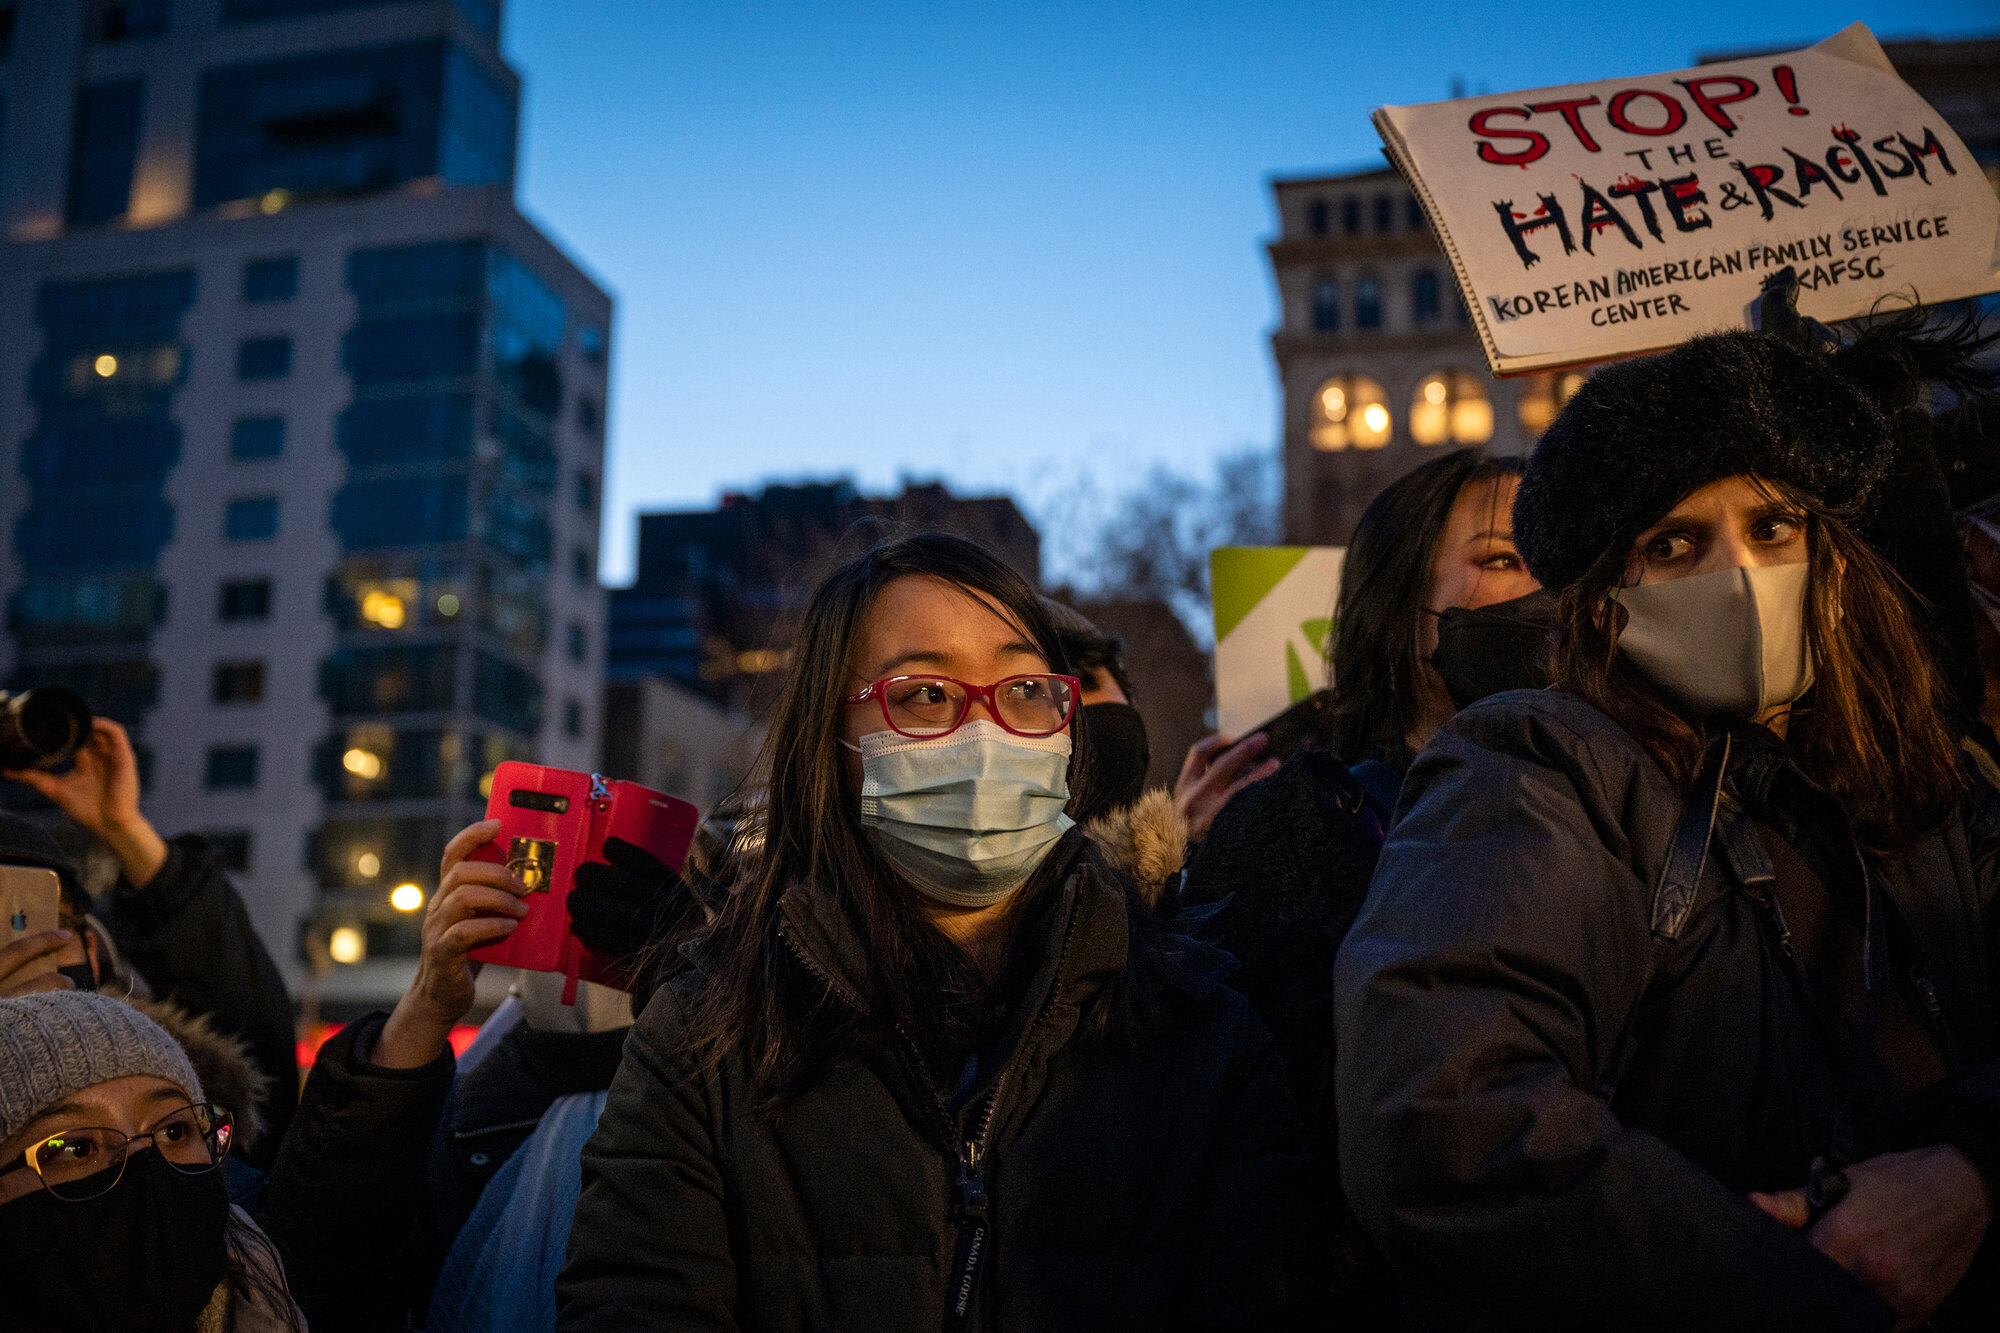 On March 19, 2021, hundreds of people packed into Union Square during an Asian American Federation peace vigil following the shootings in Atlanta.